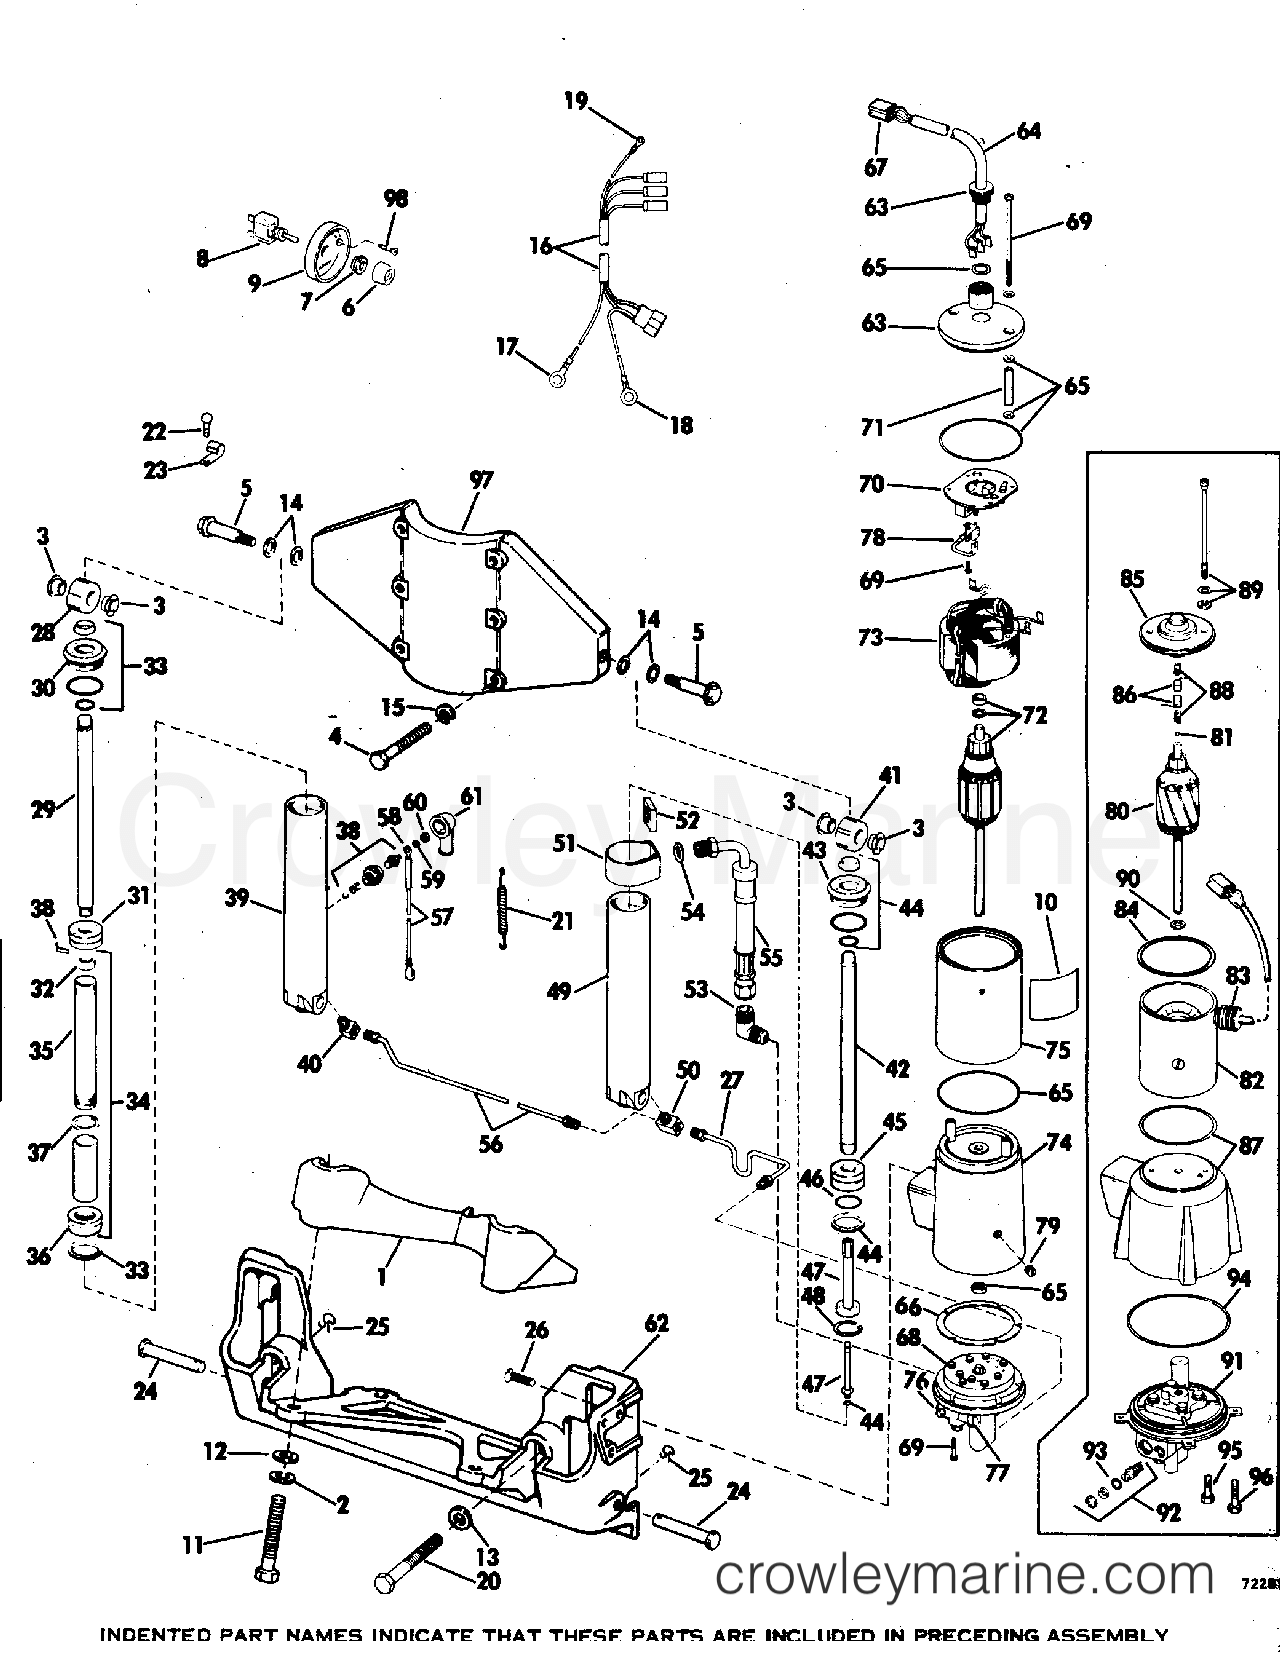 onan 5500 generator carburetor parts diagrams